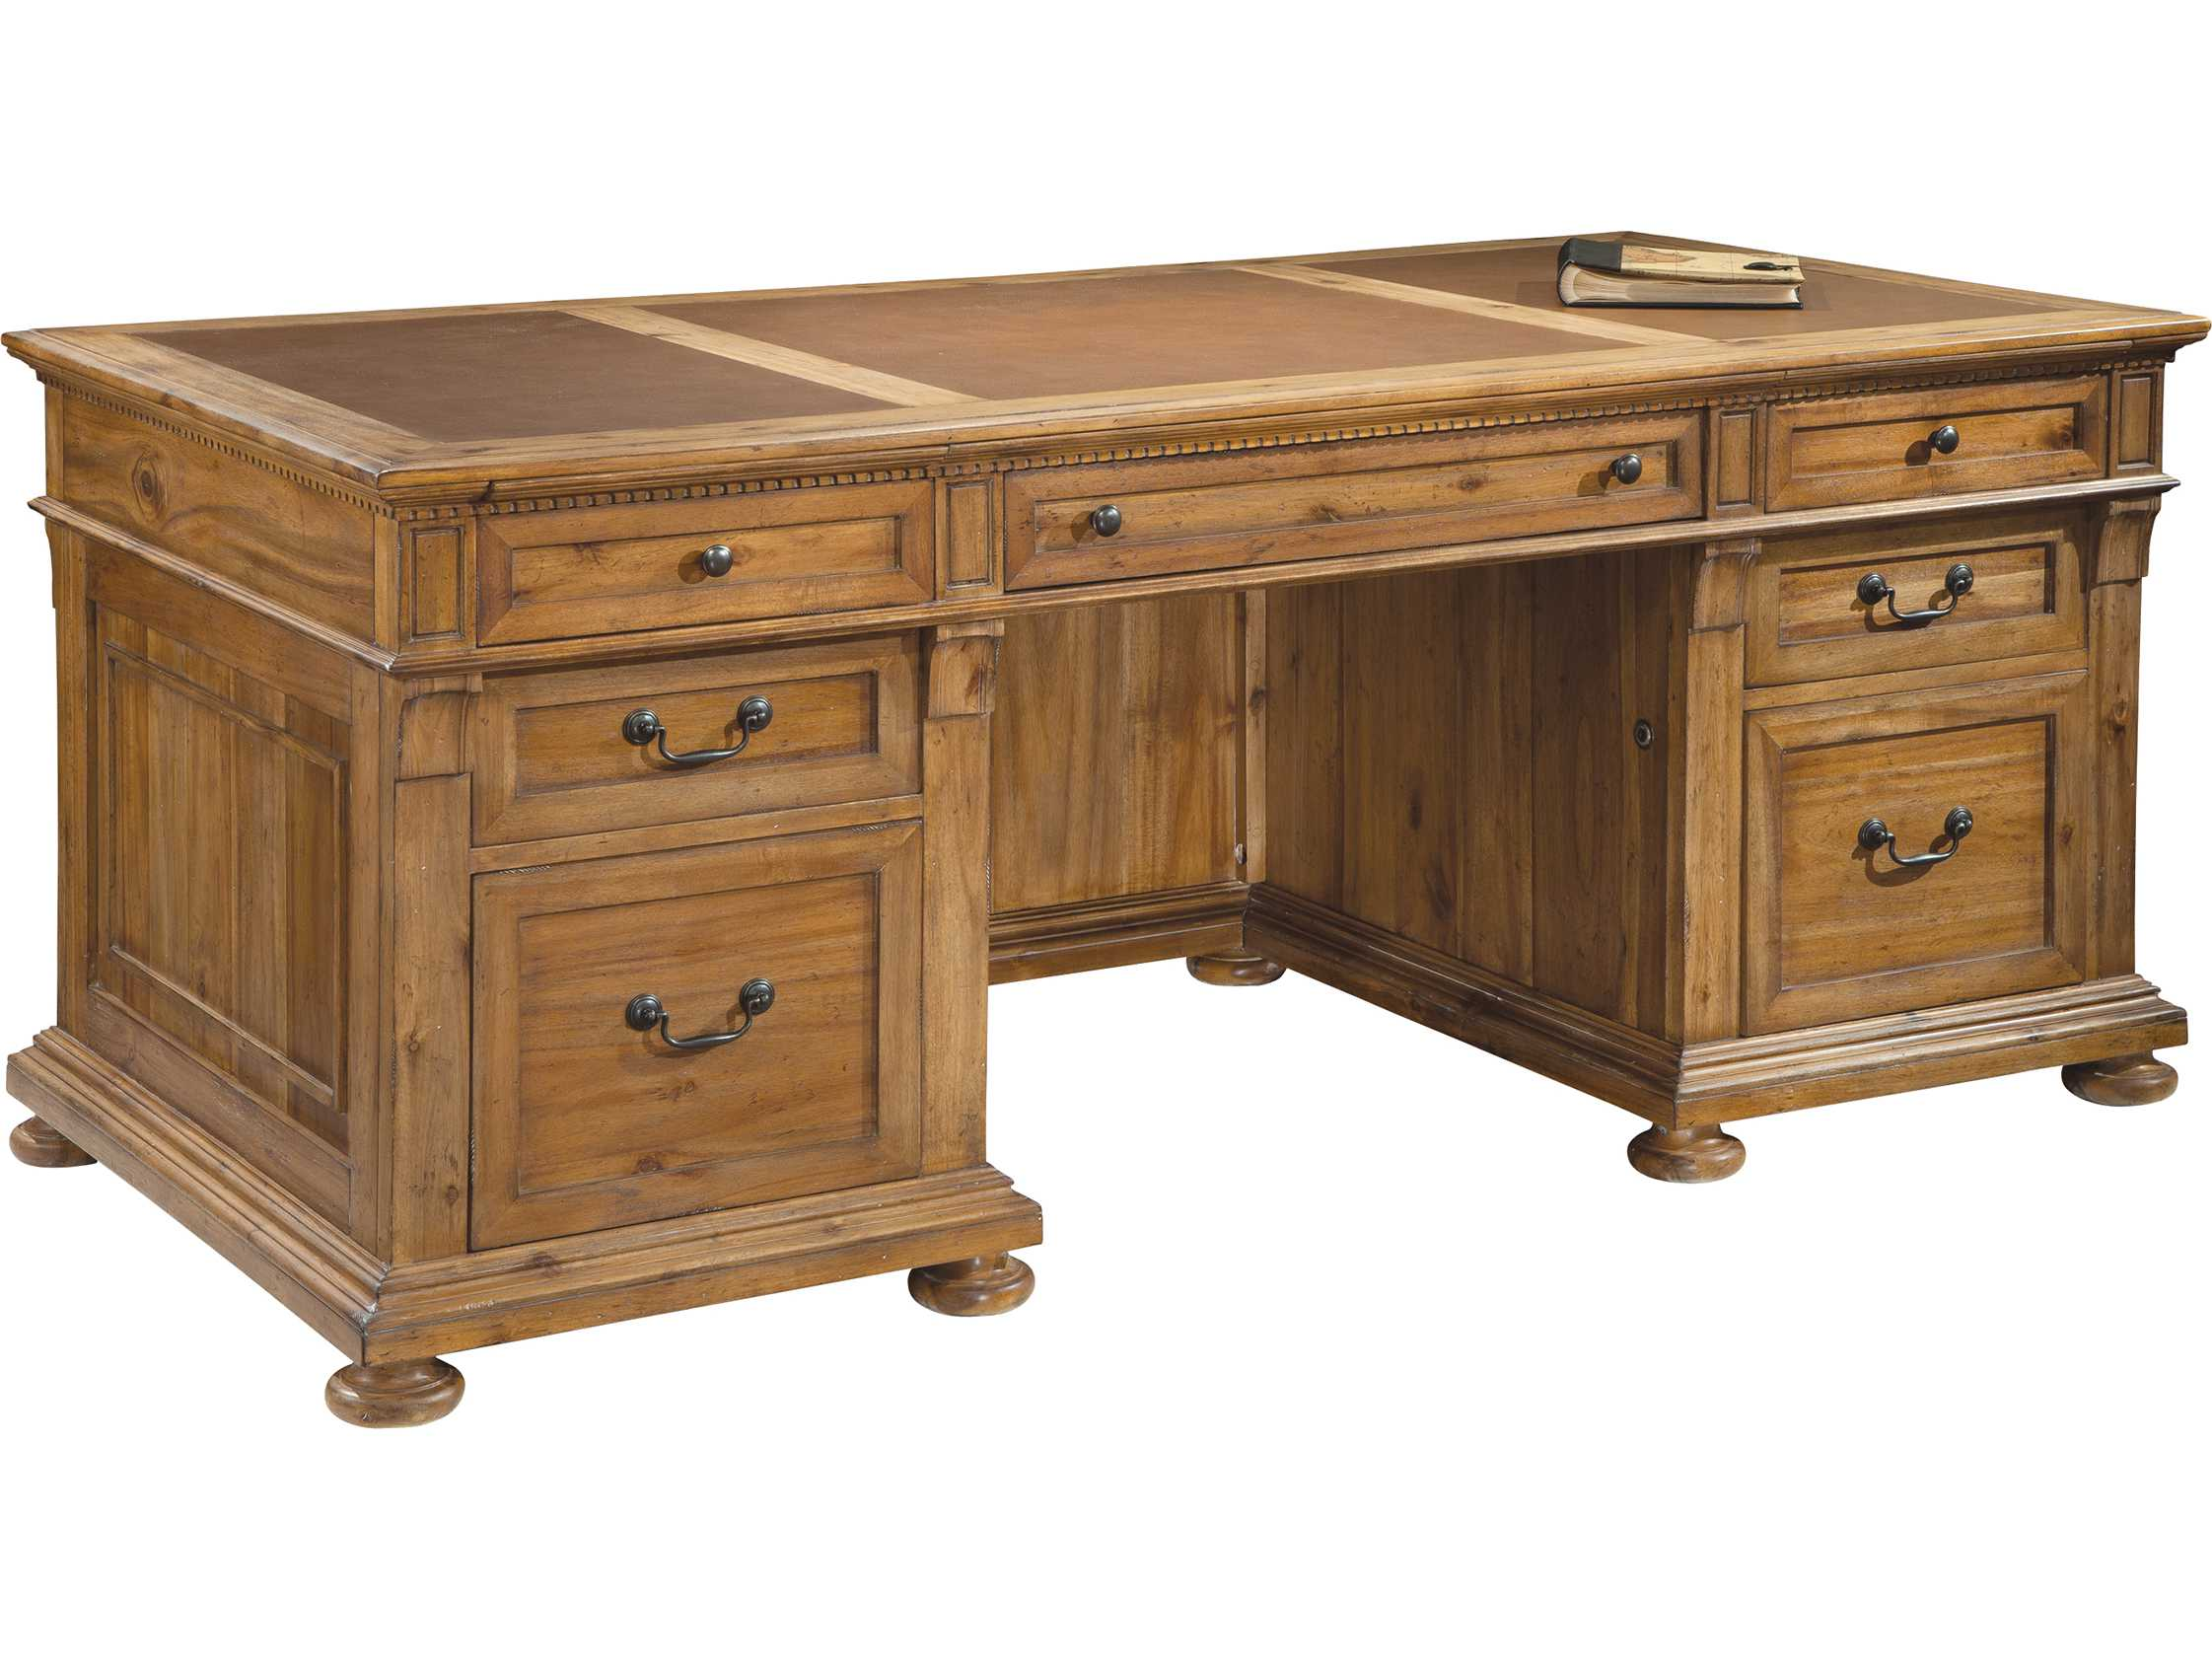 Hekman fice Express Relaxed Classic Executive Desk